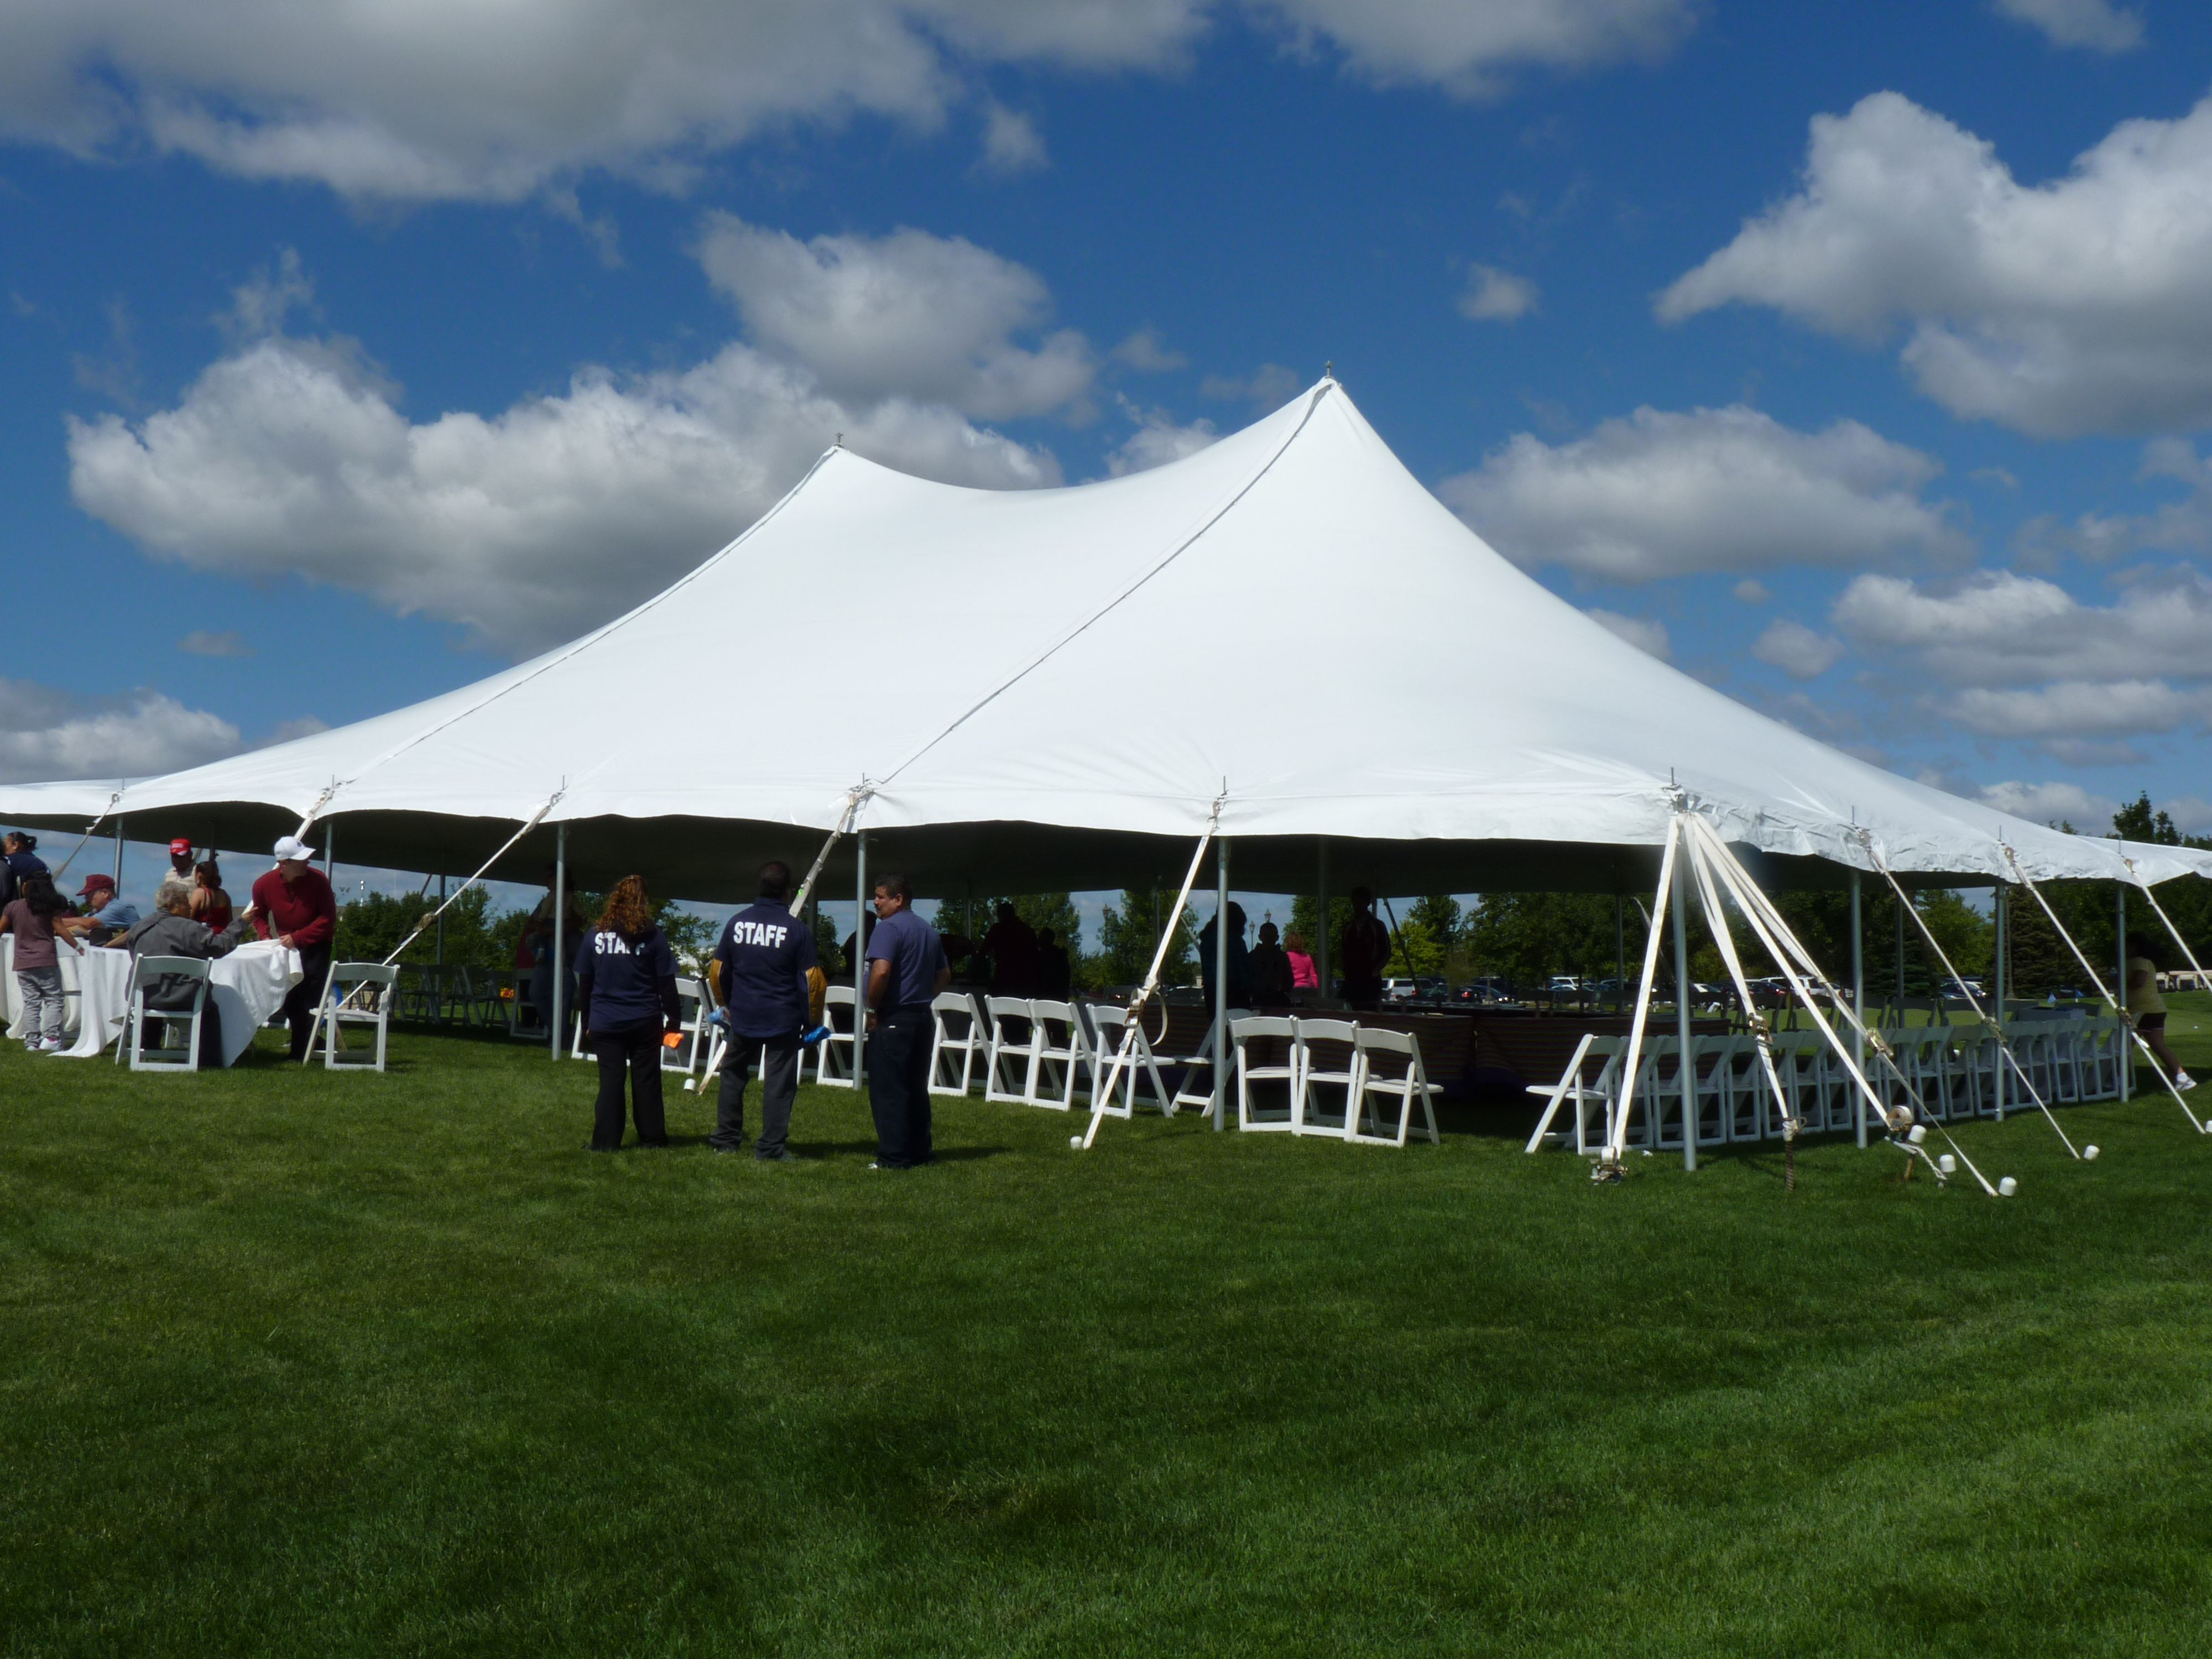 BTE 40x60 High Peak Corporate Event Tent.JPG (4000×3000) & BTE 40x60 High Peak Corporate Event Tent.JPG (4000×3000) | Tent ...